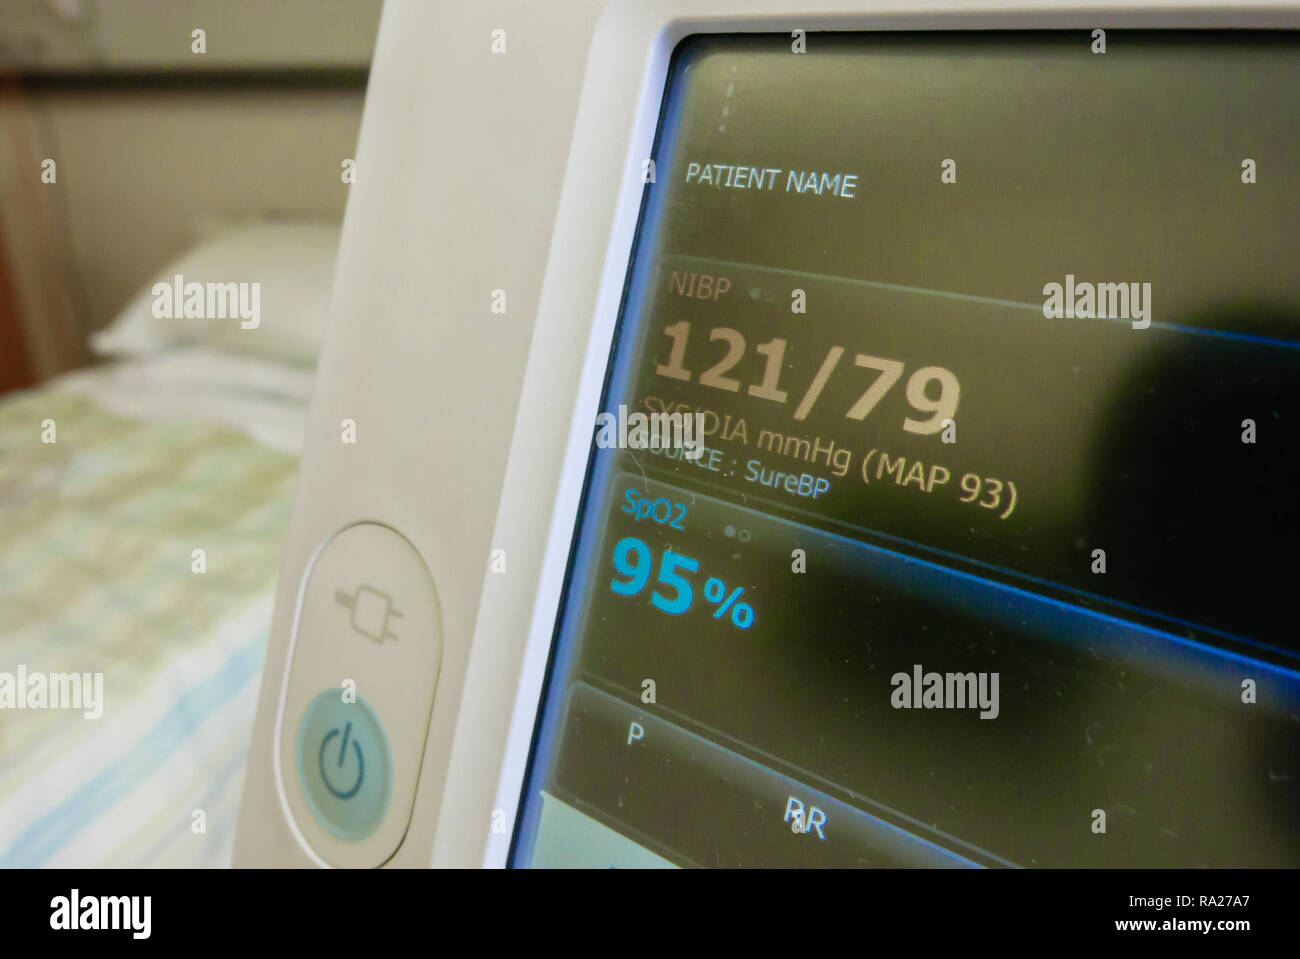 WelchAllyn blood pressure monitor in a hospital ward showing a normal blood pressure of 121/79, and a blood saturation level of 95%. - Stock Image